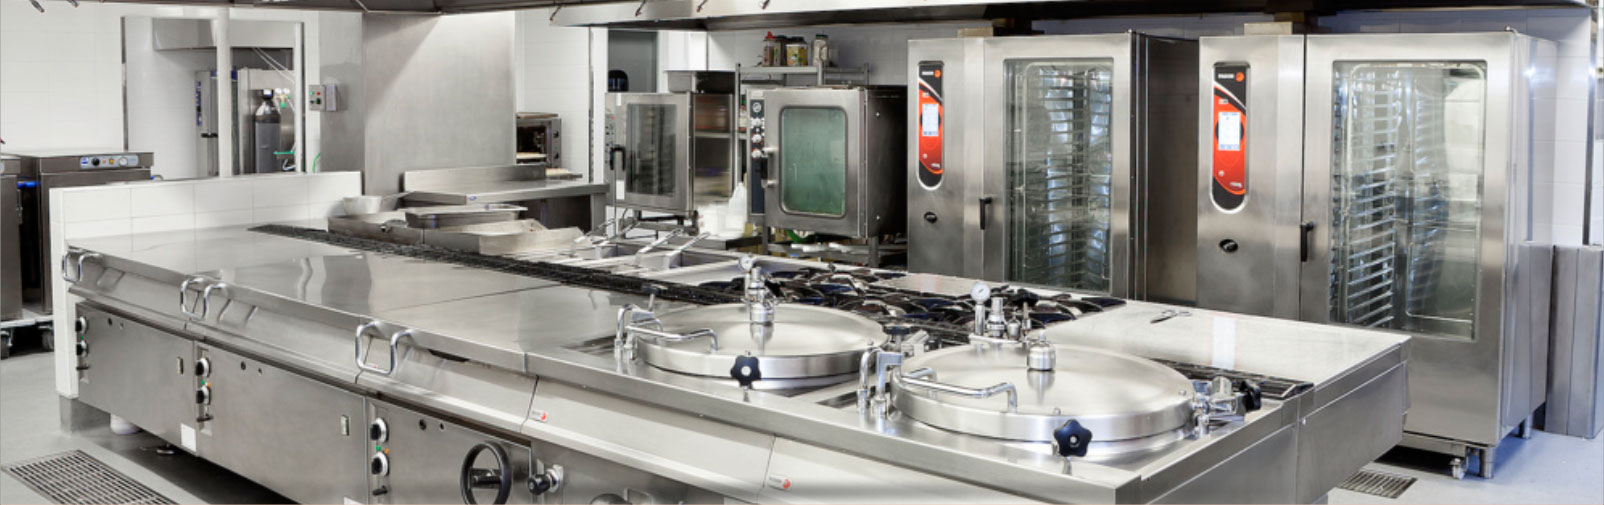 Commercial Industrial Restaurant Hotel Kitchen